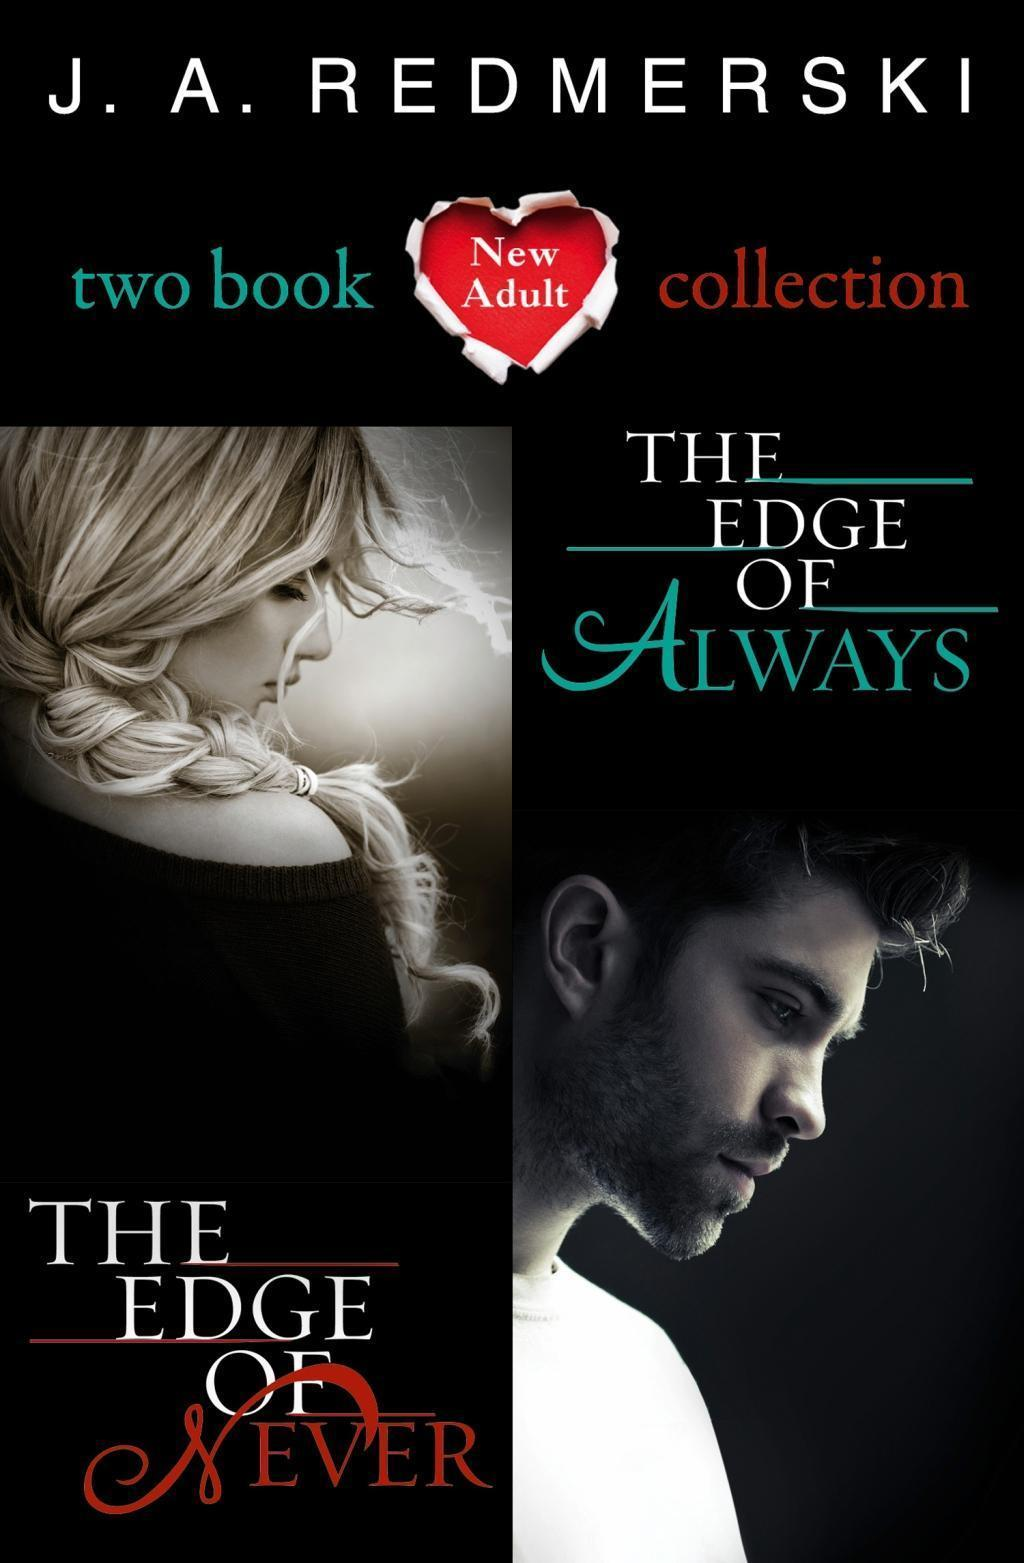 The Edge of Never, The Edge of Always: 2-Book Collection